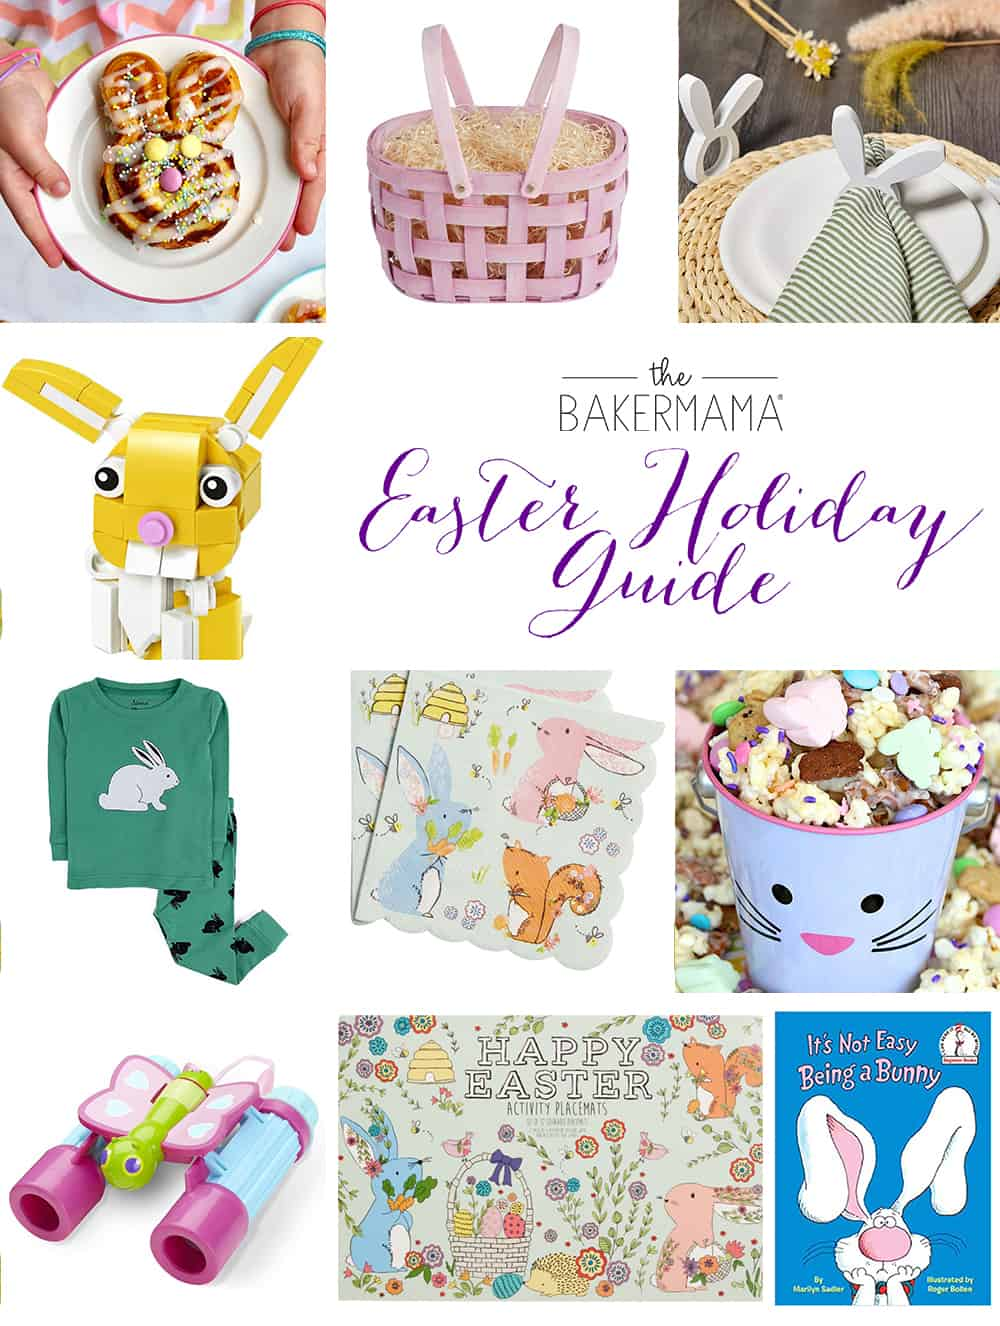 Easter Holiday Guide by The BakerMama